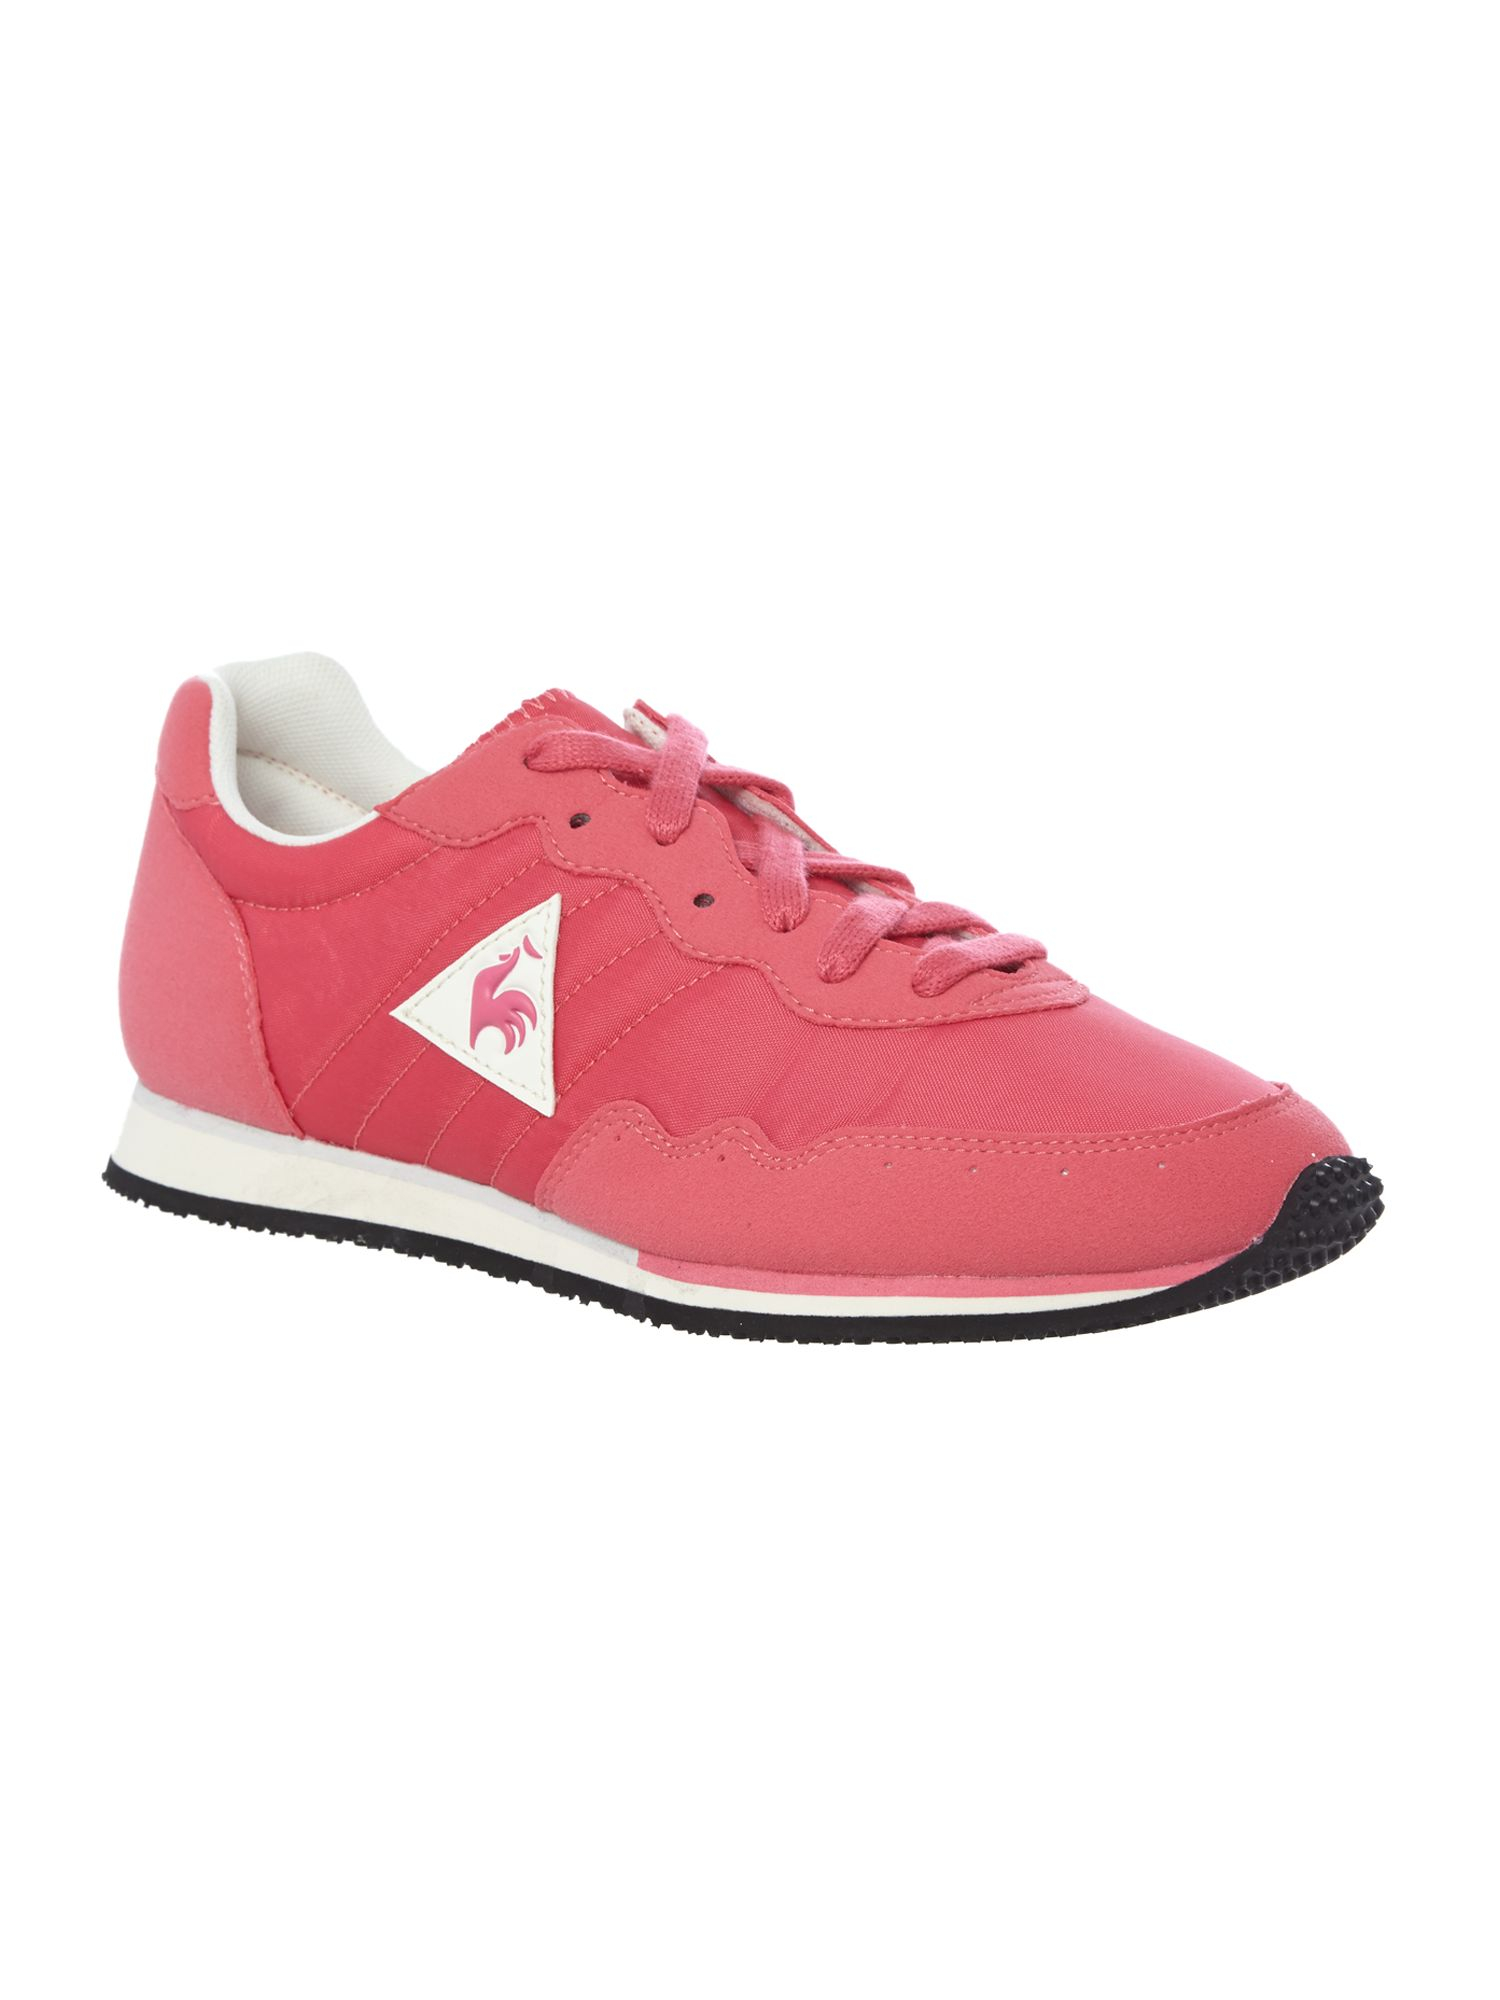 le coq sportif milos vintage women running shoes in pink lyst. Black Bedroom Furniture Sets. Home Design Ideas